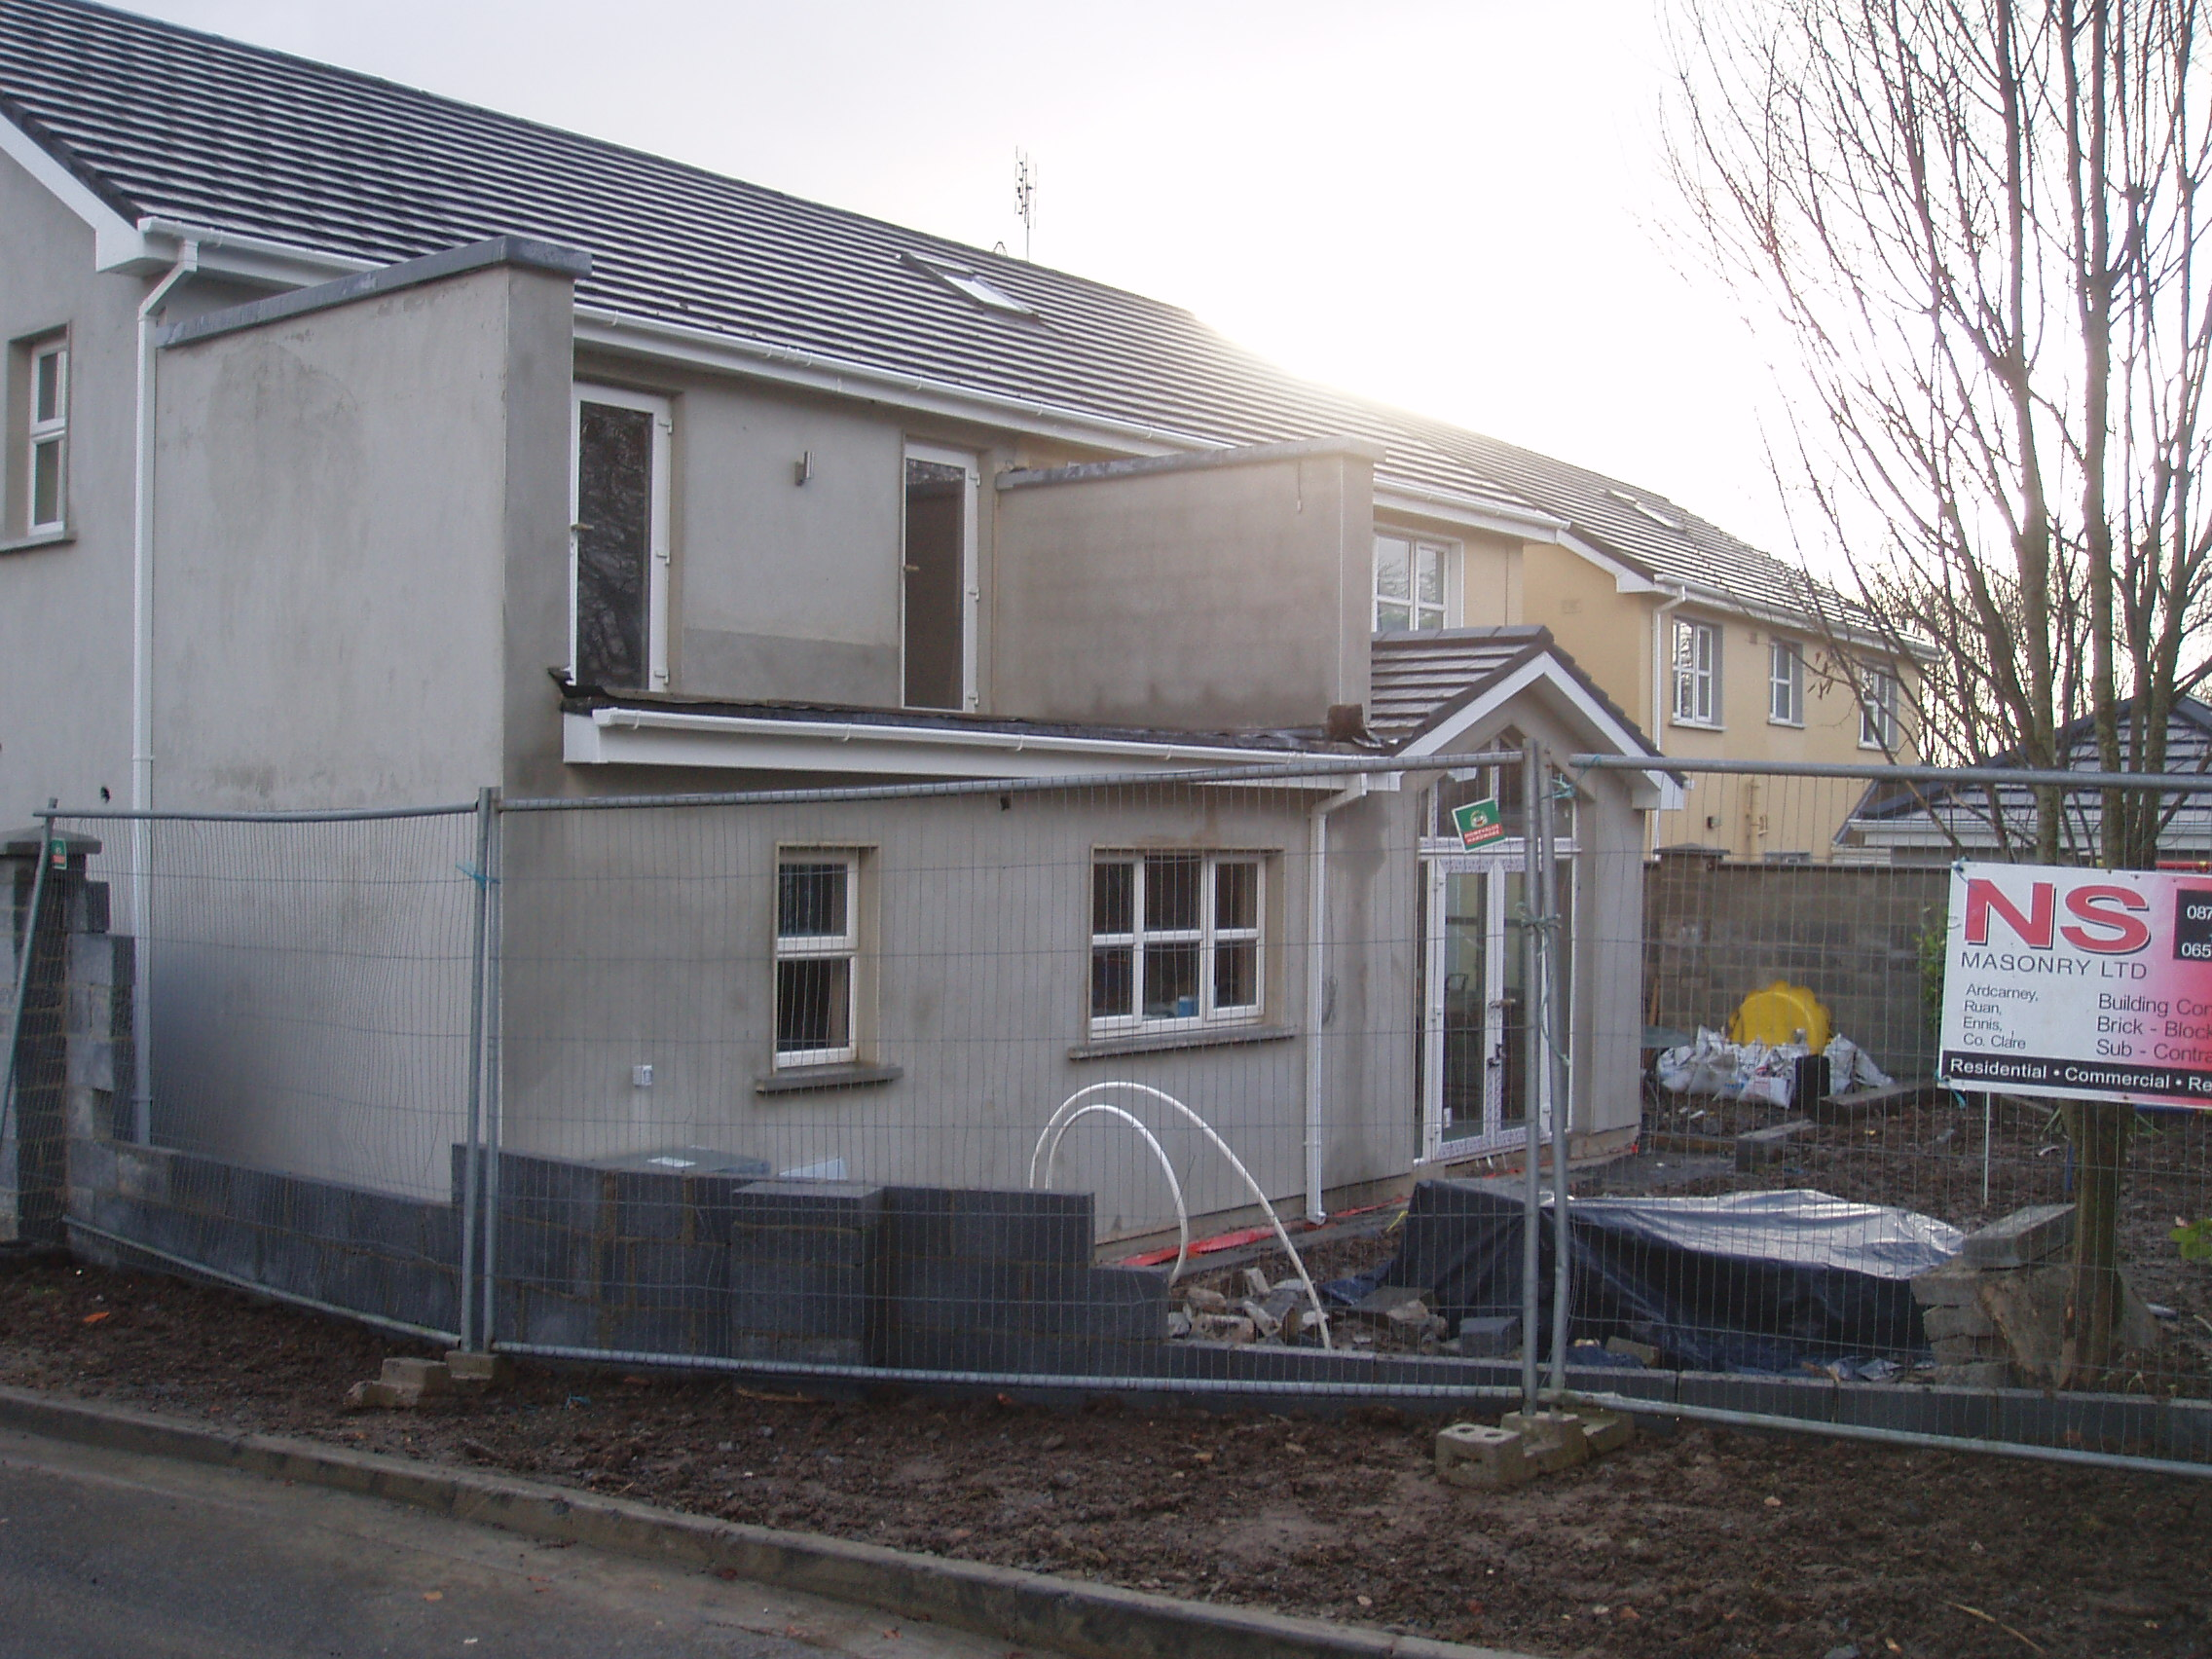 Extention Limerick Rd Ns Construction Ennis Clare